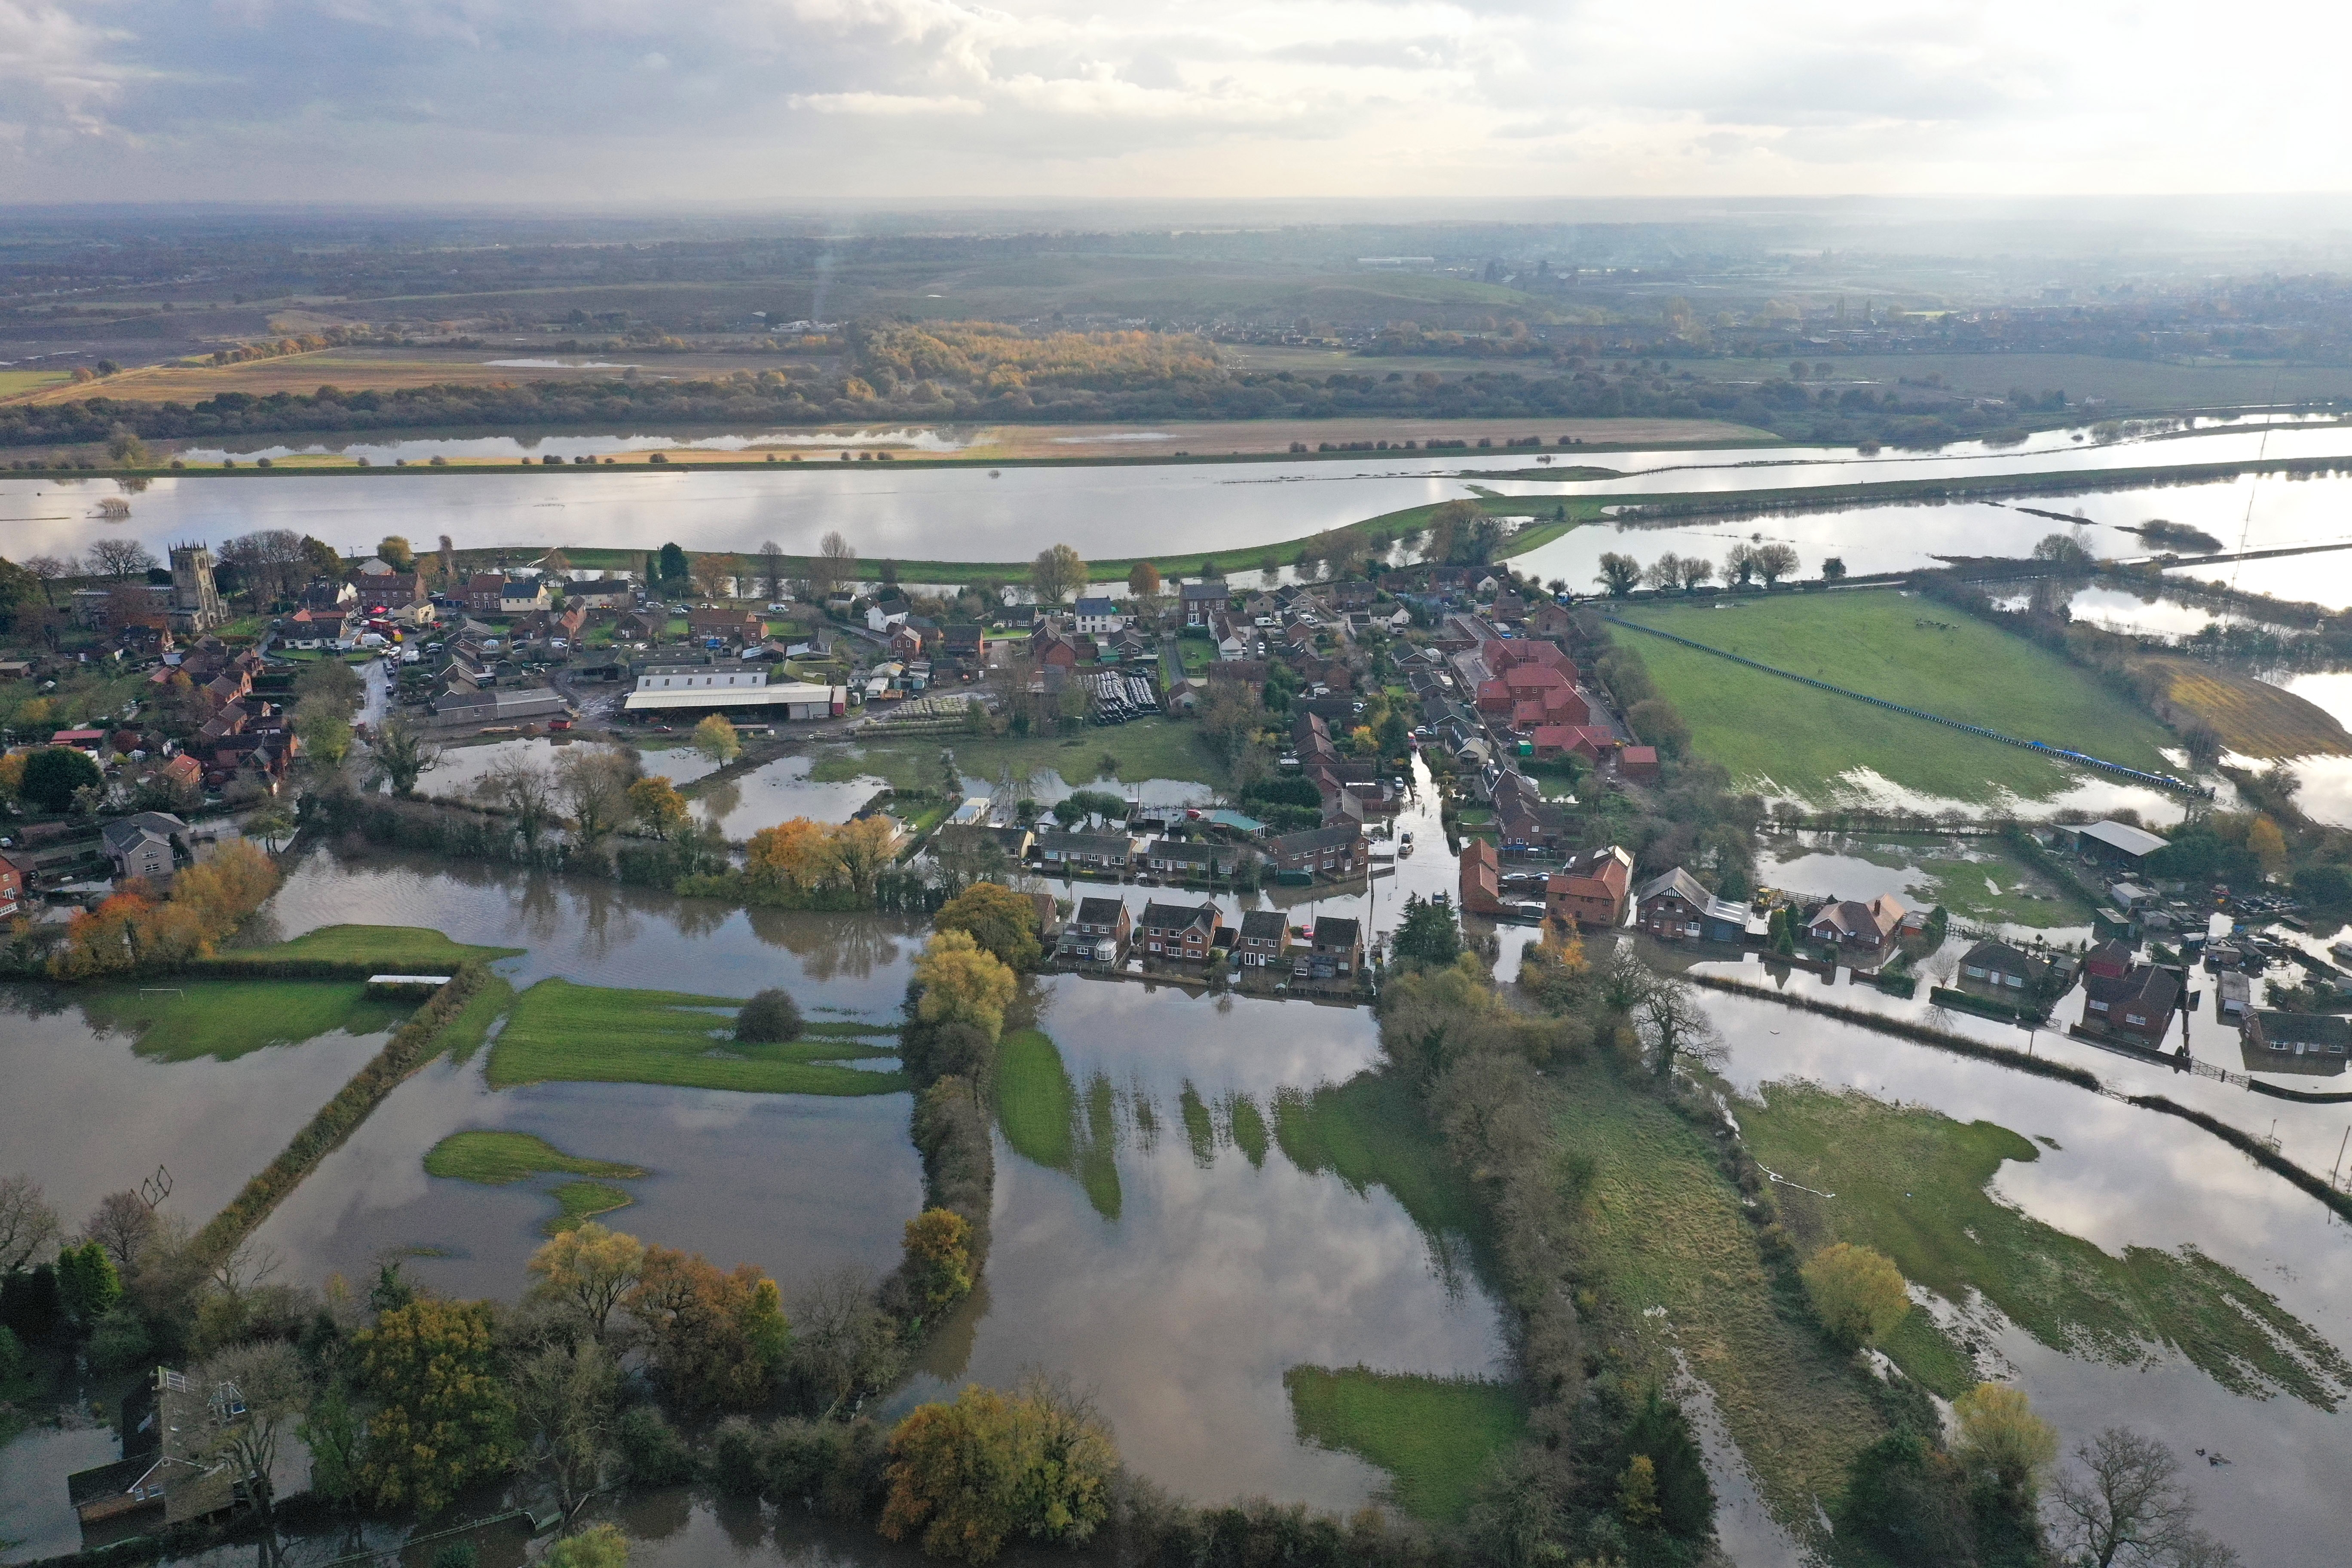 The flood water at Fishlake, in Doncaster, South Yorkshire, as parts of England endured a month's worth of rain in 24 hours, with scores of people rescued or forced to evacuate their homes.